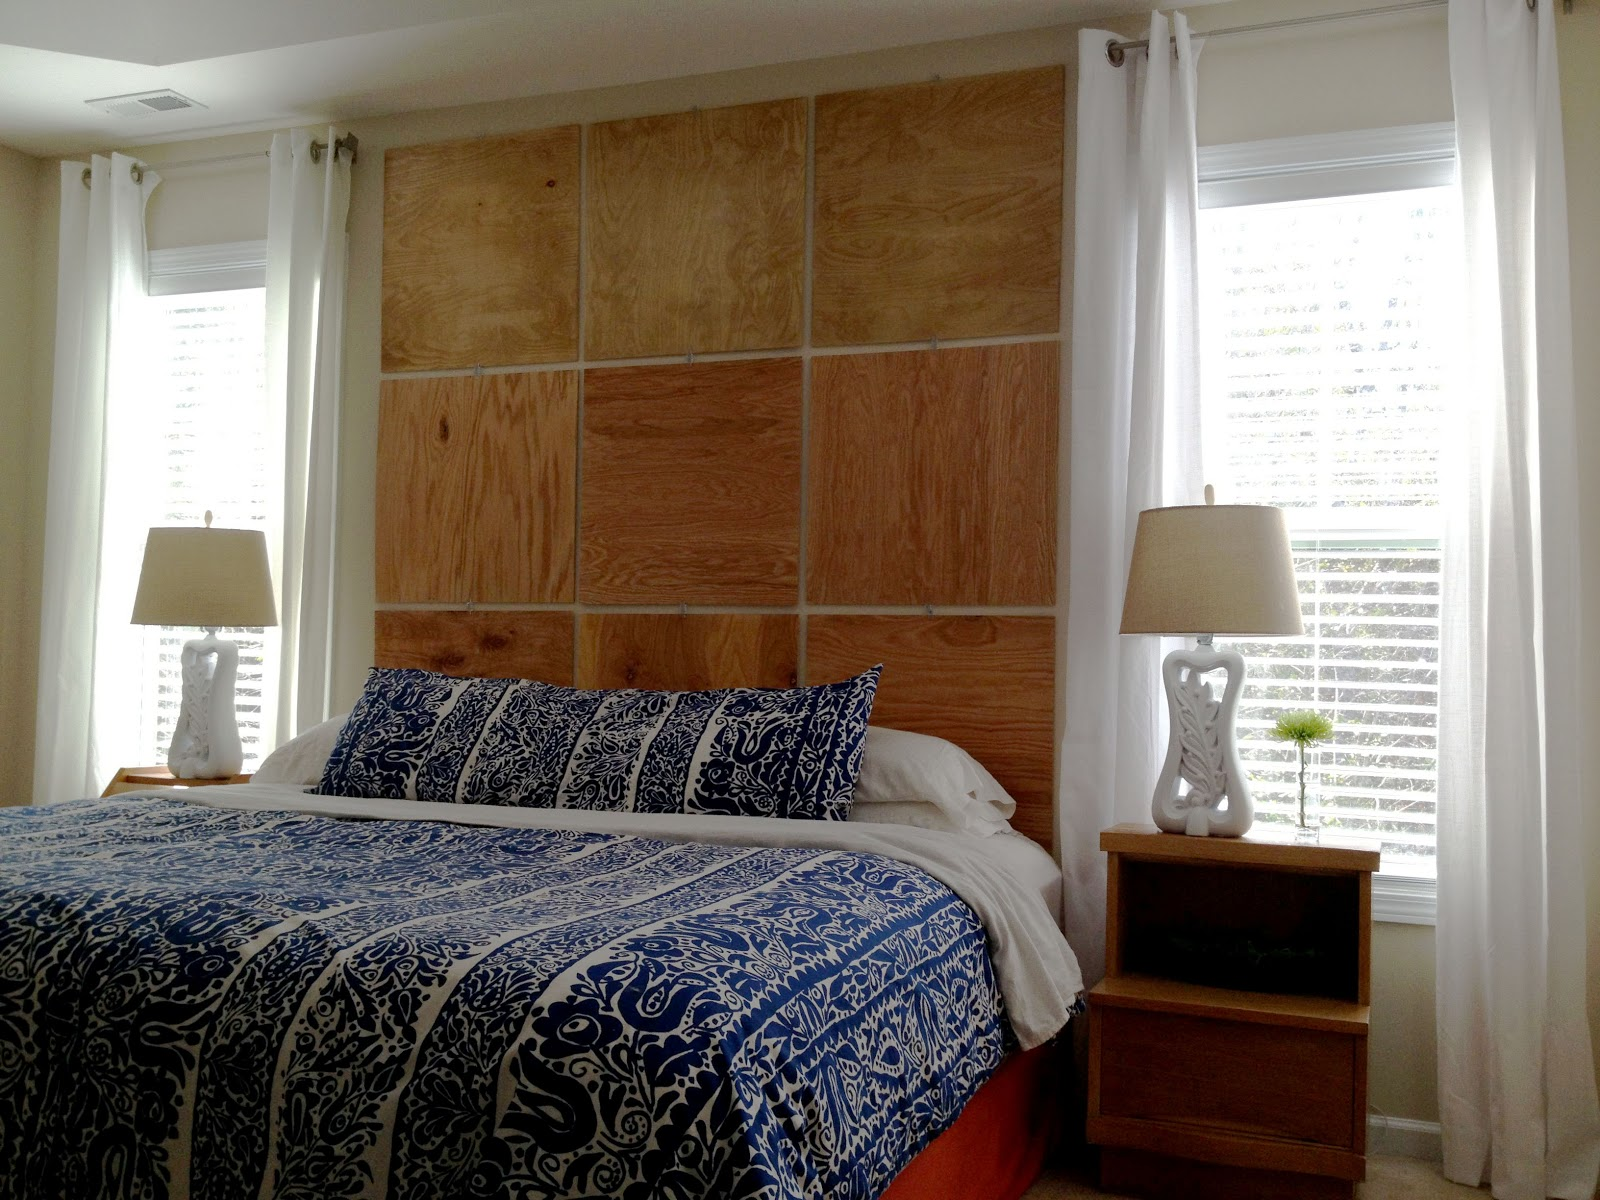 Furniture Stunning Cheap Headboard Design Ideas With Brown ... on Cheap Bed Ideas  id=58348